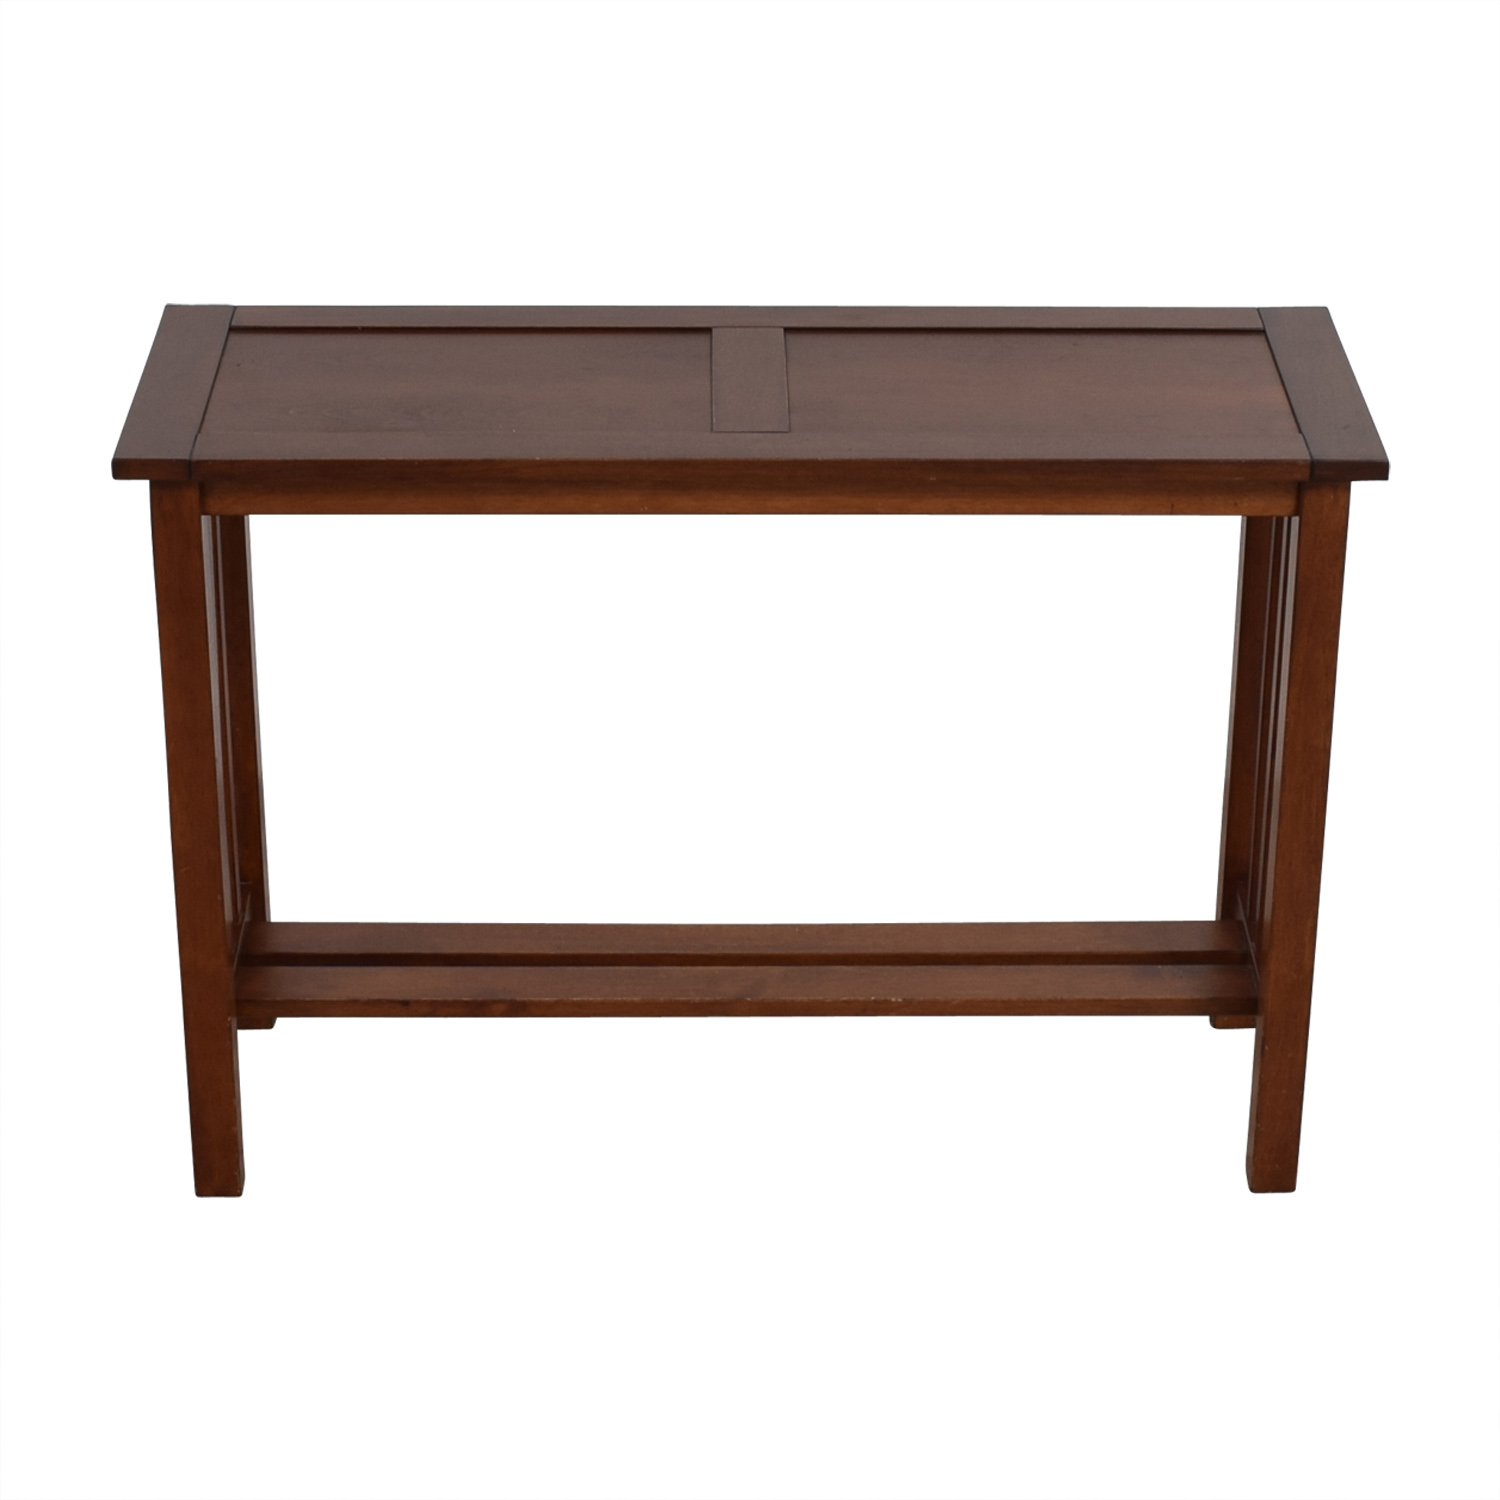 ... Crate U0026 Barrel Crate U0026 Barrel Console Table Coupon ...